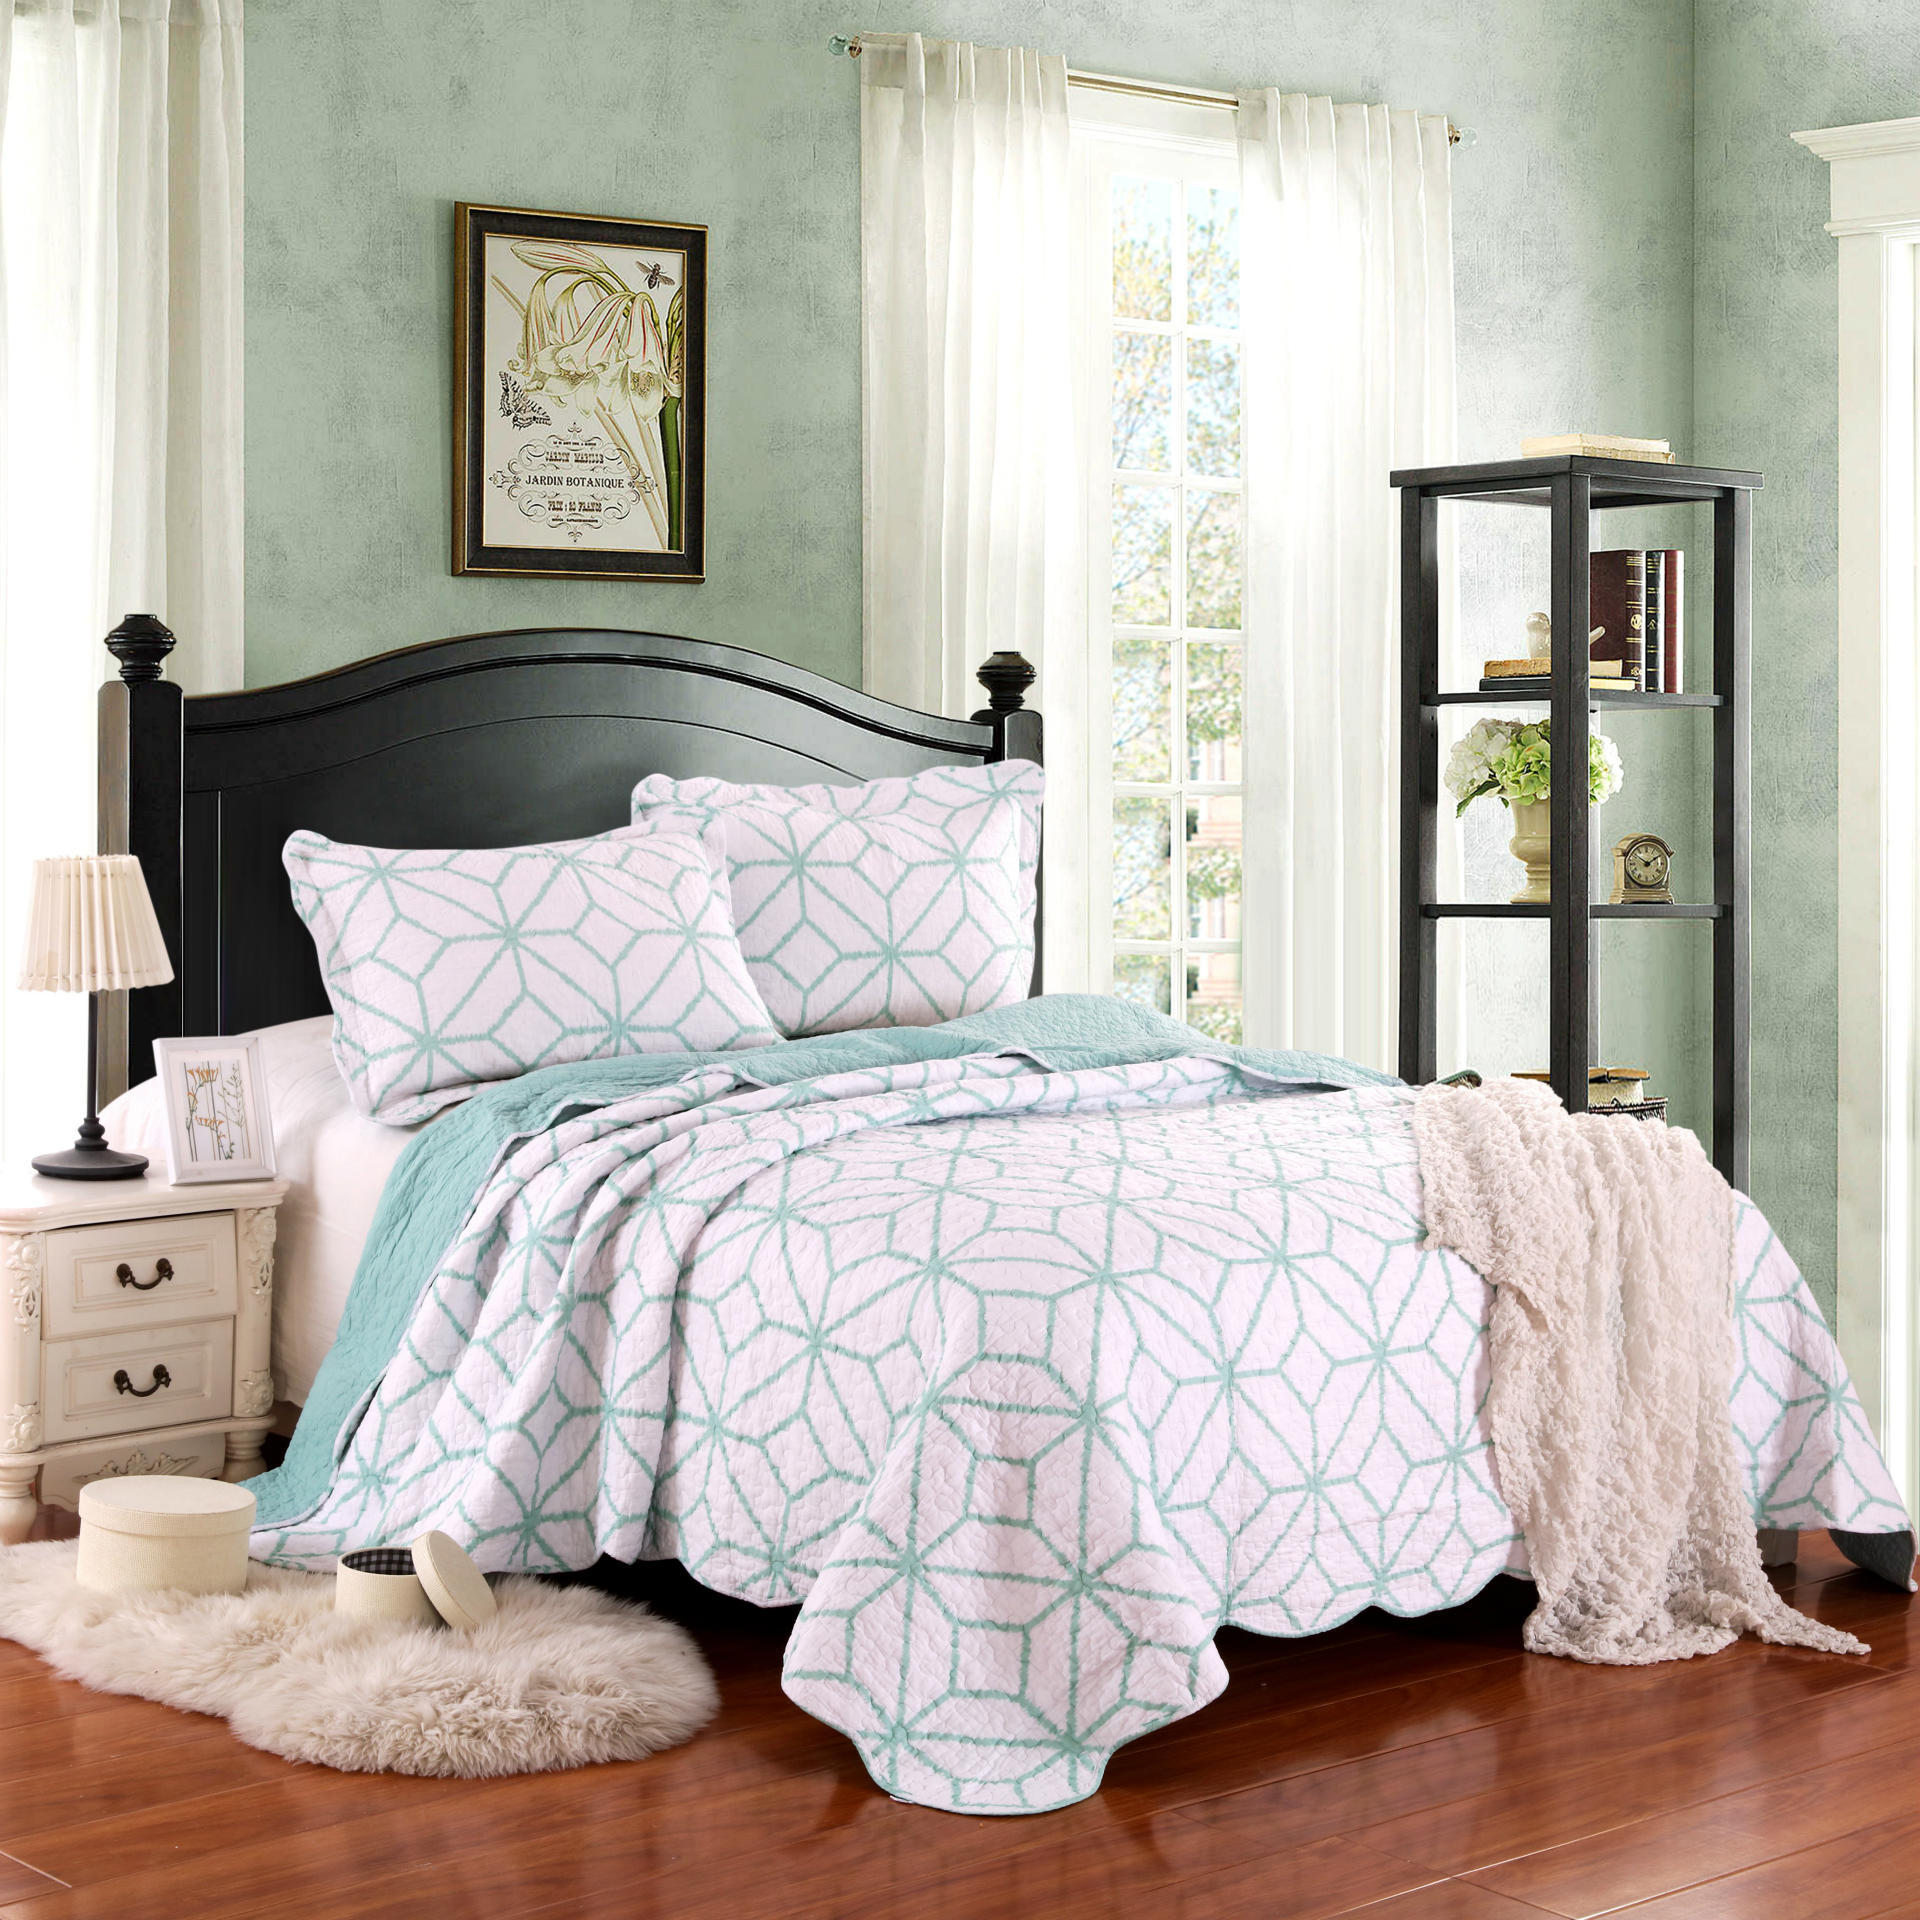 Green and White Geometric Pattern 3-Piece Bed in a Bag